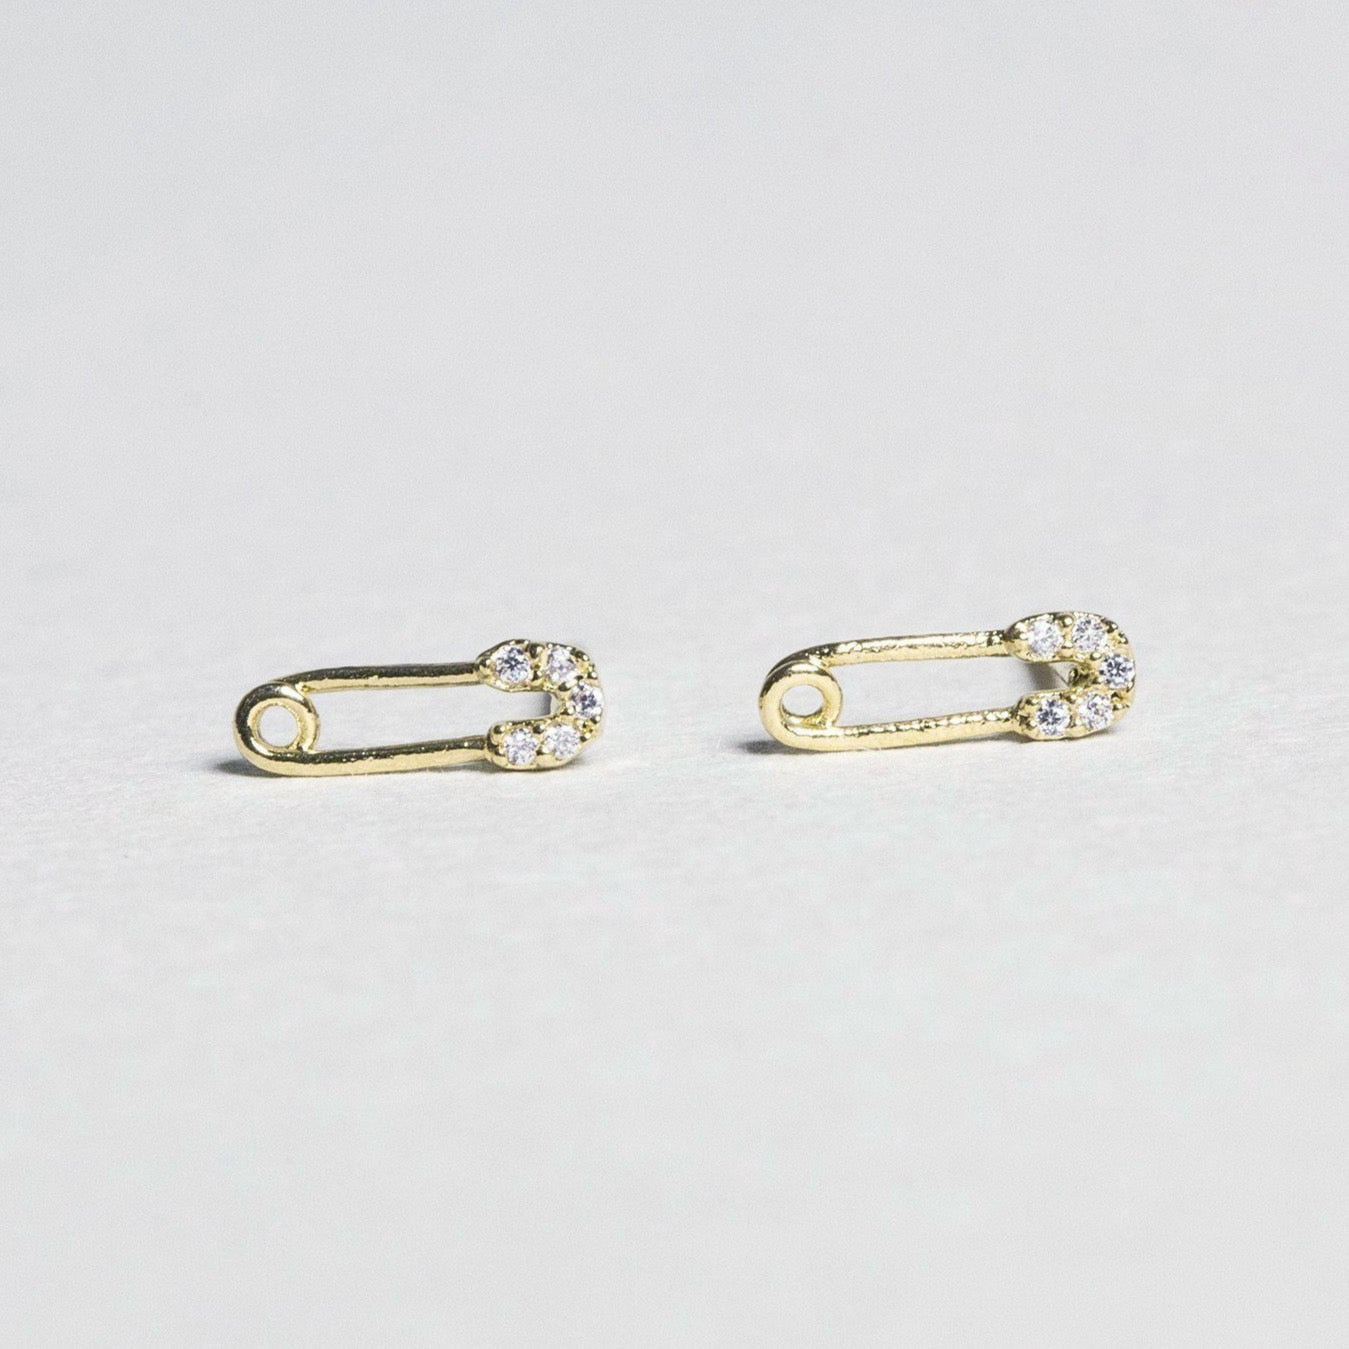 super sweet safety pin earrings witha sprinkle of crystals